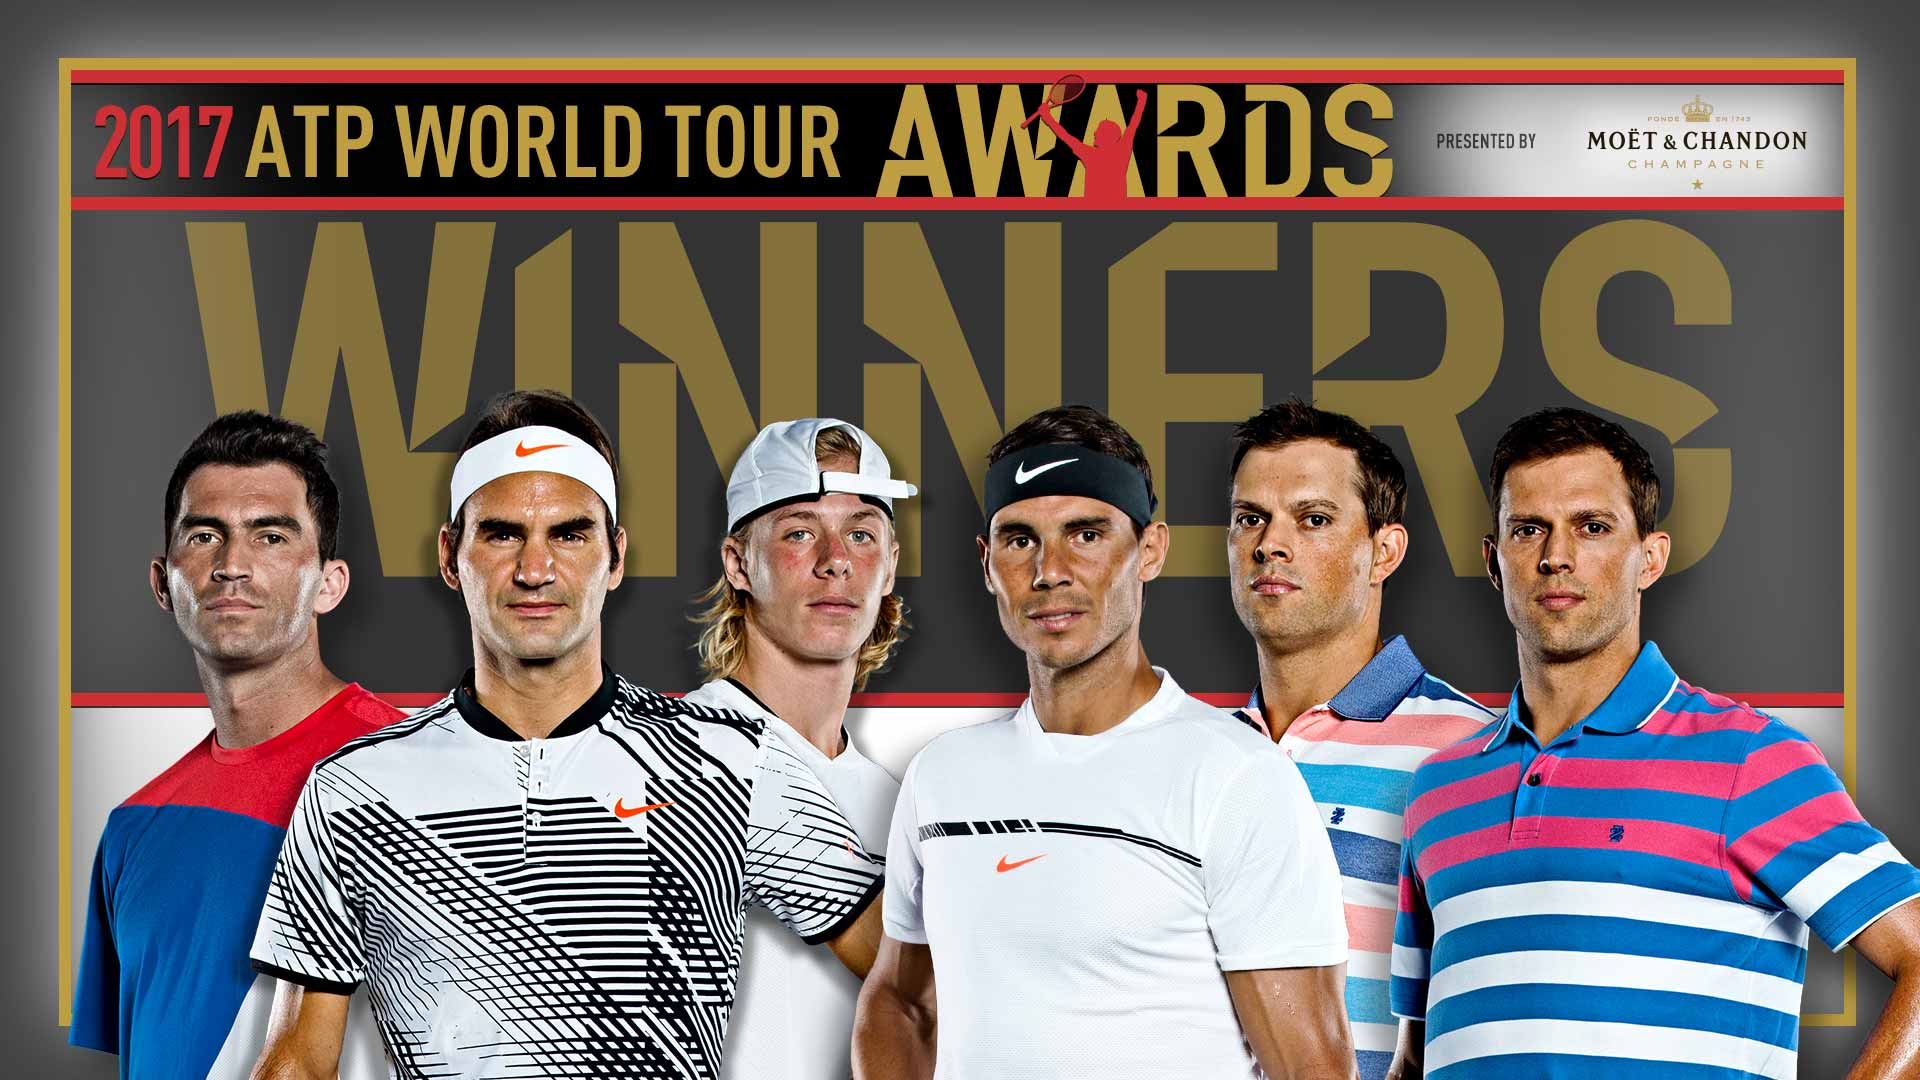 2017 ATP World Tour Awards presented by Moet & Chandon